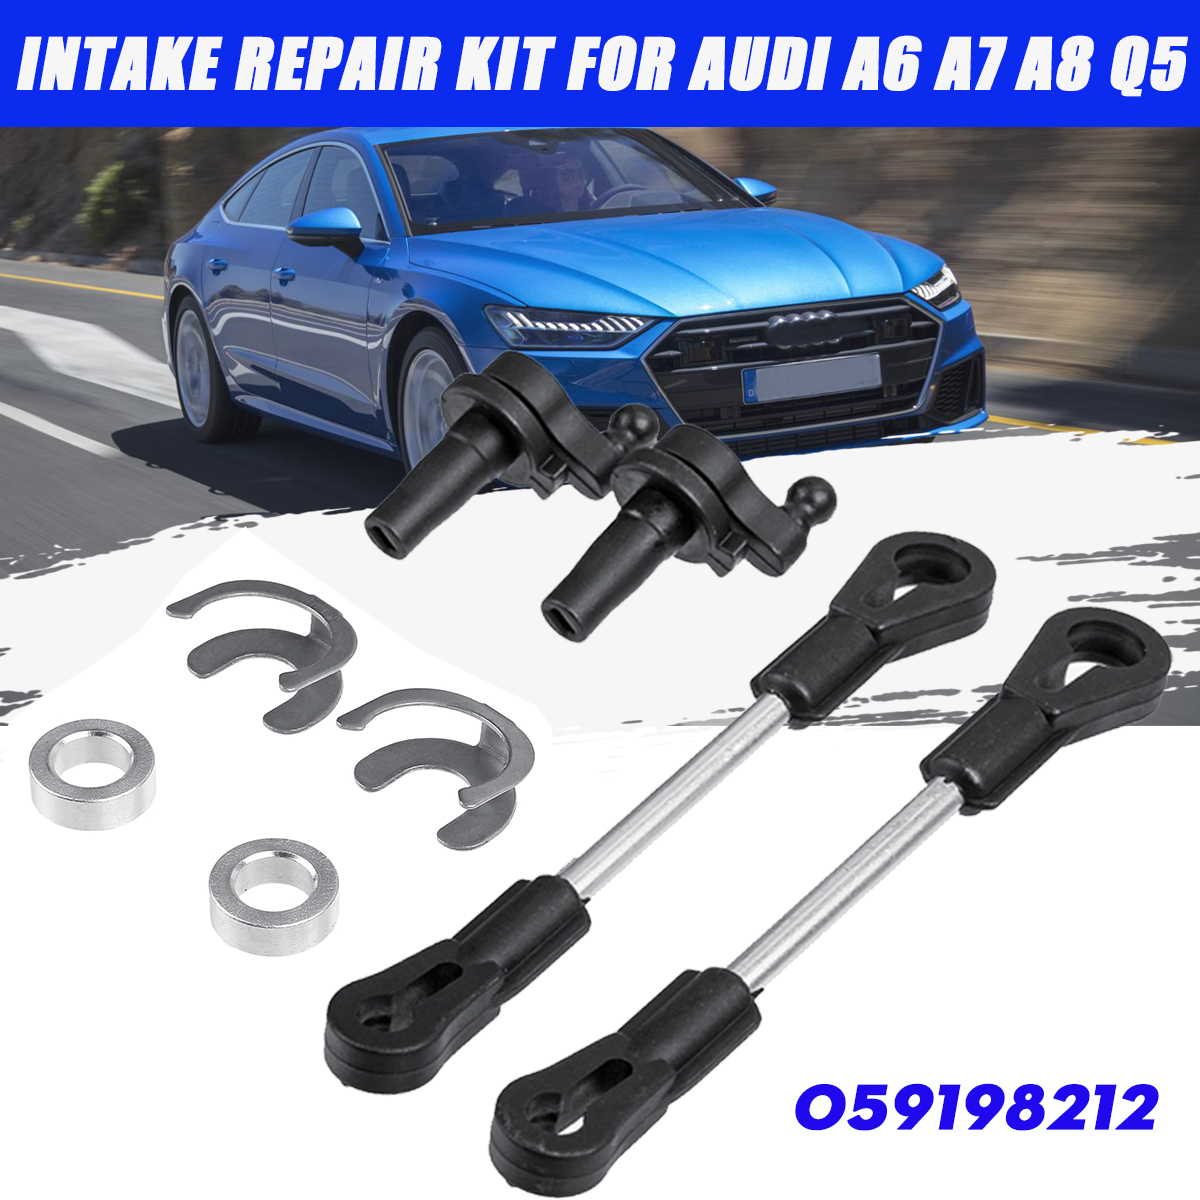 059198212 Intake Manifold Swirl Flap Repair Kit For Audi A4 A5 A6 A7 A8 Q5 Q7 2.7 3.0 TDI 059198212